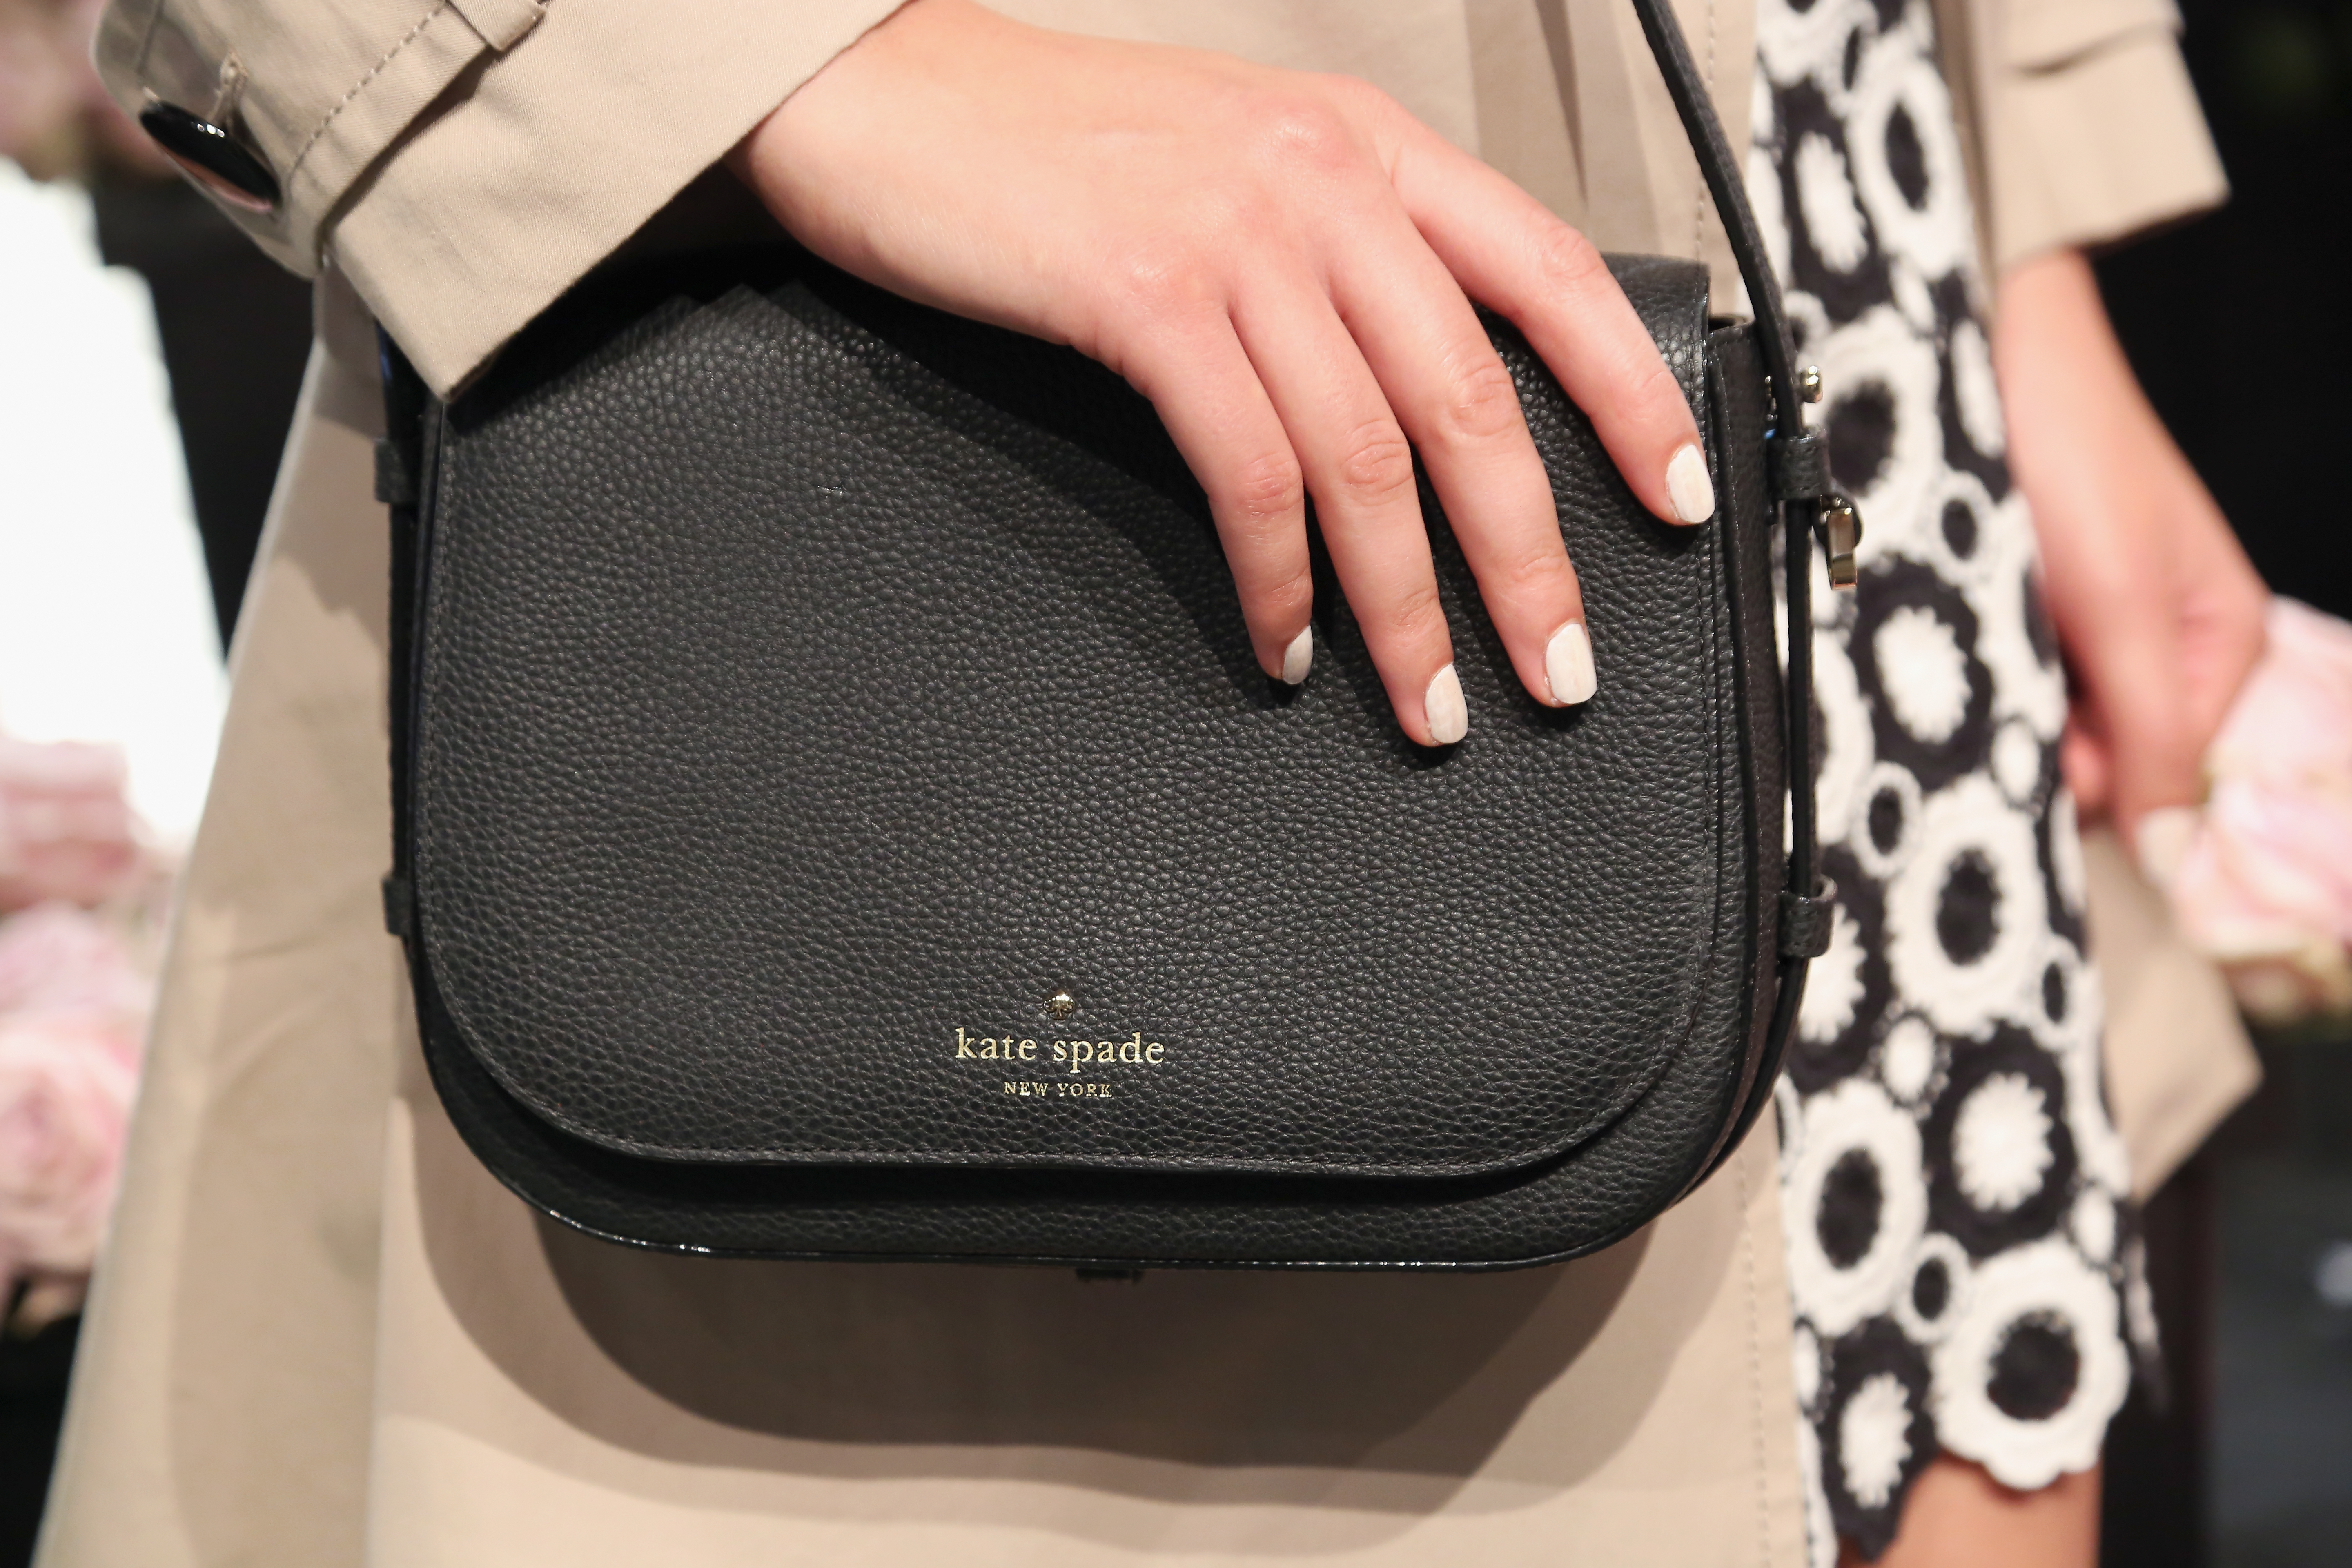 59095b594 How To Tell If A Kate Spade Bag Is Real - Spade Images and Wallpaper ...